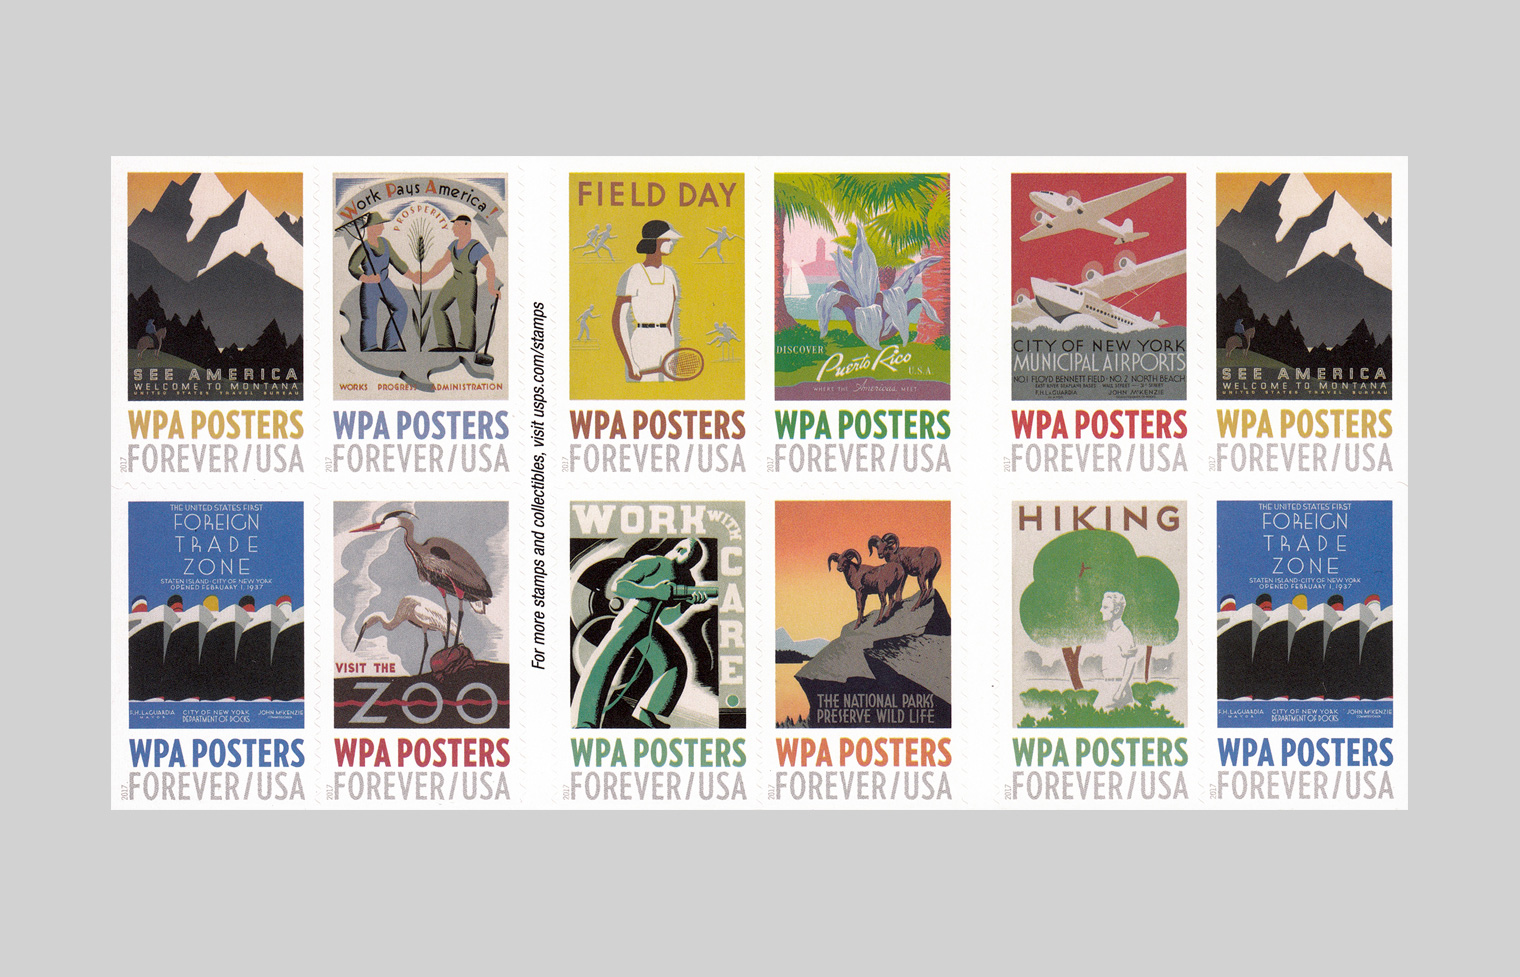 WPA Posters Stamp